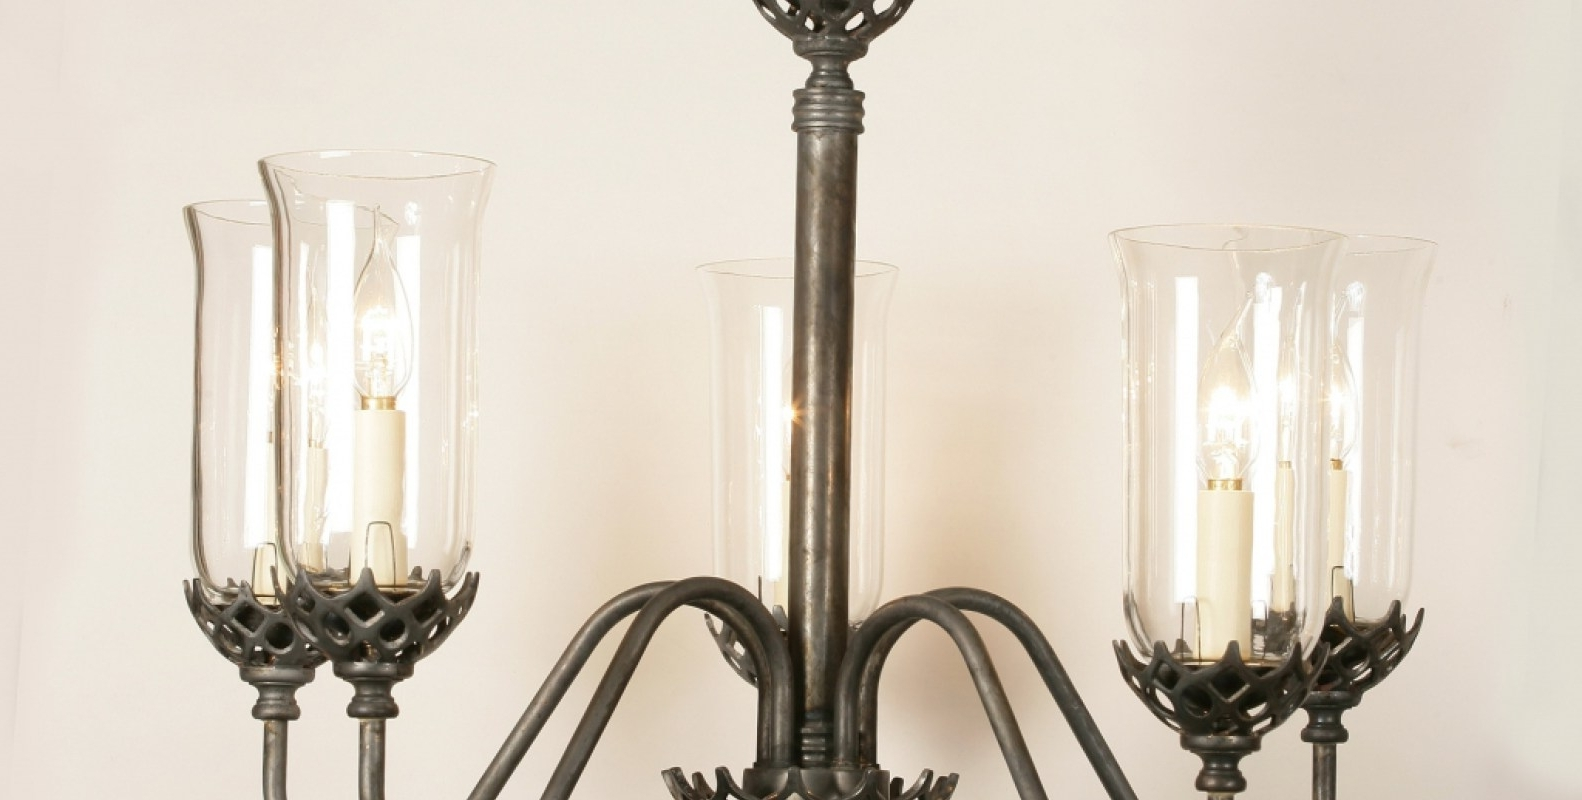 Trendy Modern Wrought Iron Chandeliers Regarding Light : Antique Wrought Iron Chandelier Rustic Home Design Ideas (View 15 of 20)